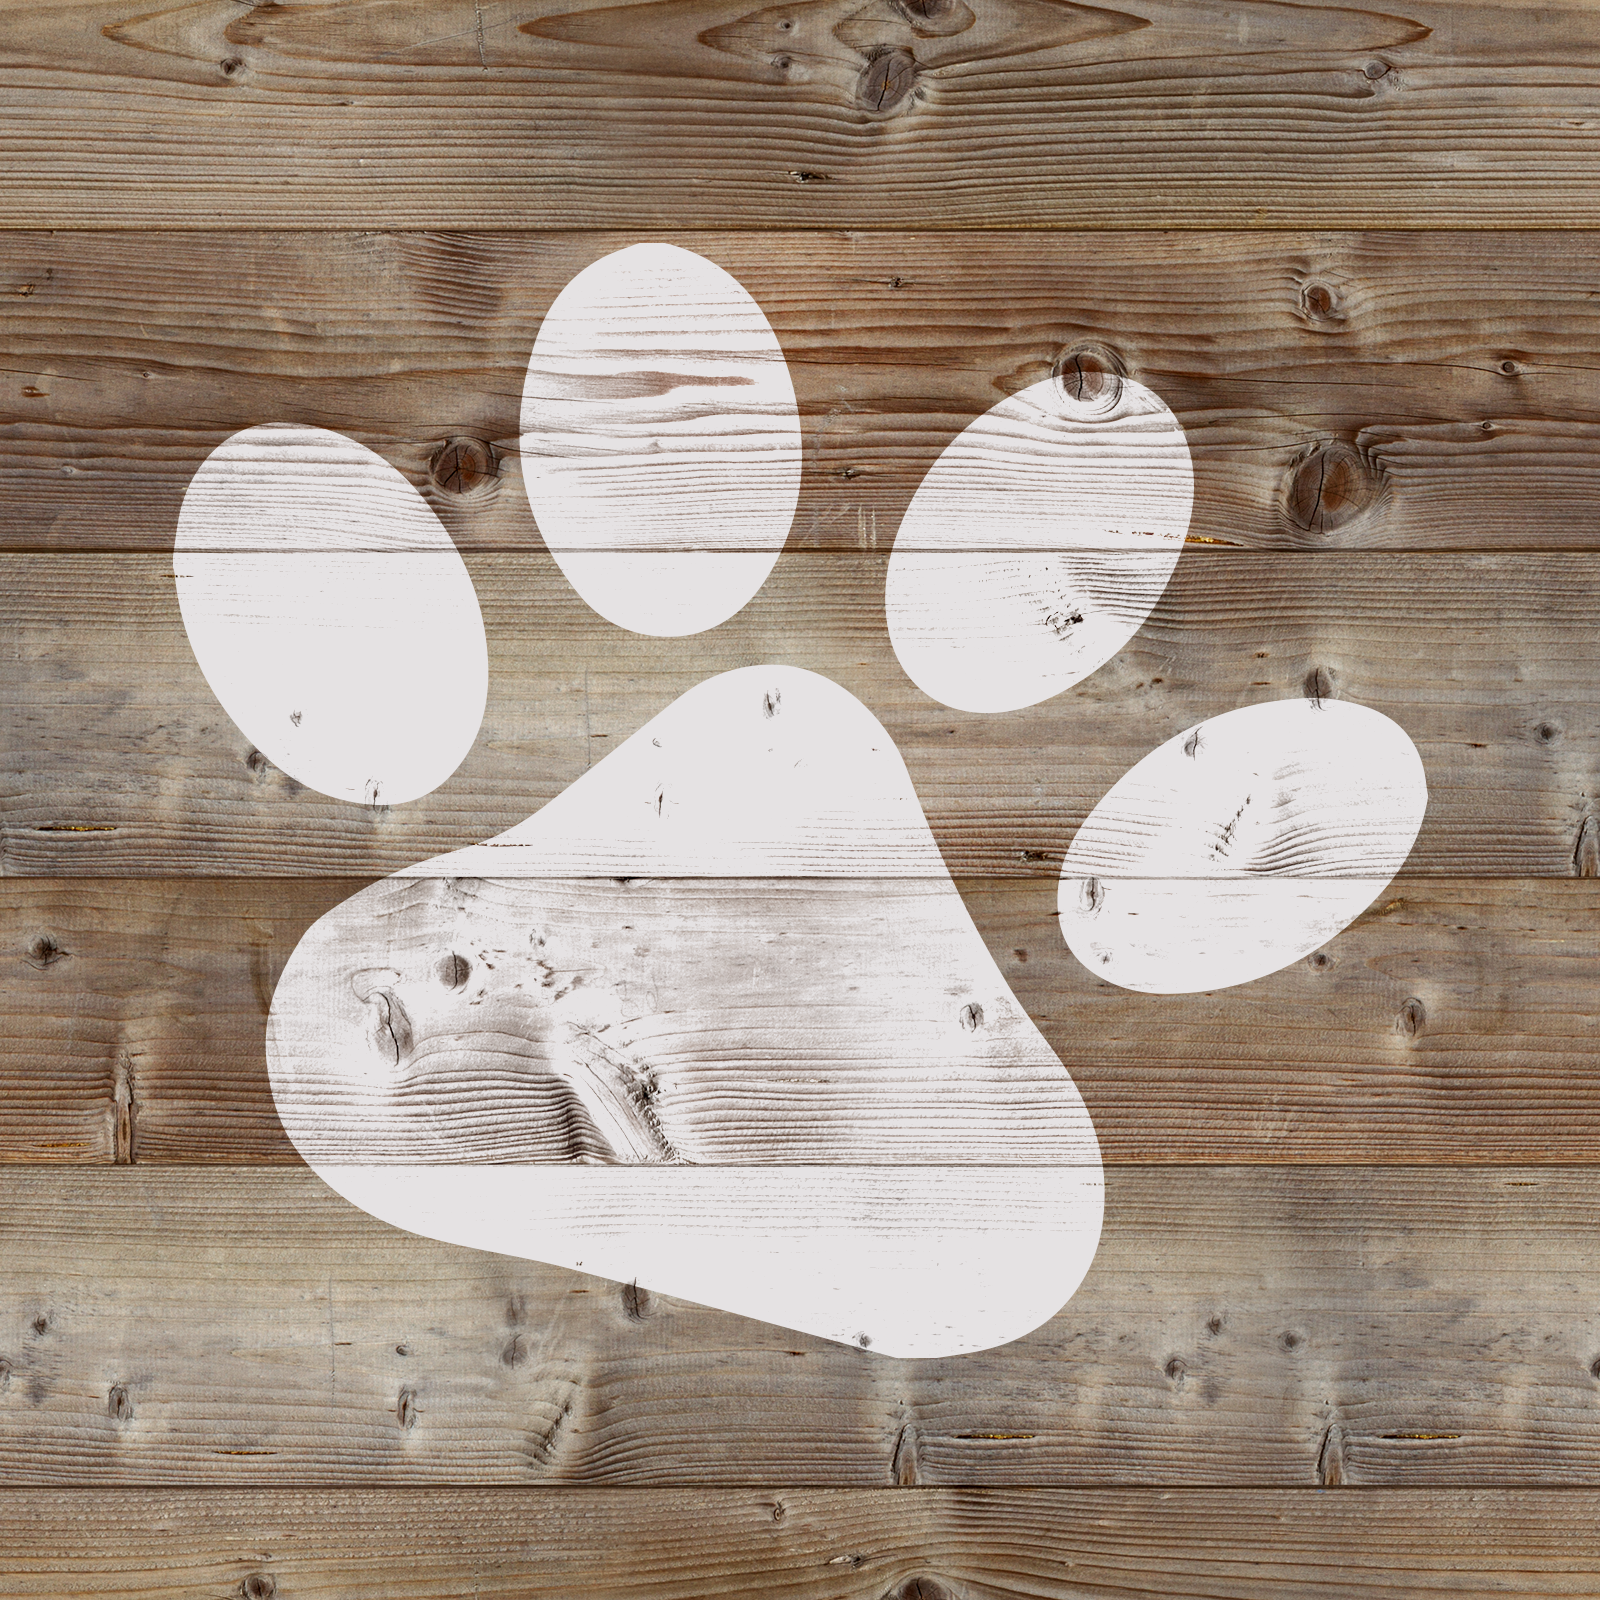 Dog Paw Stencil - Reusable Stencil of Animal Paw Print in Small & Large Sizes